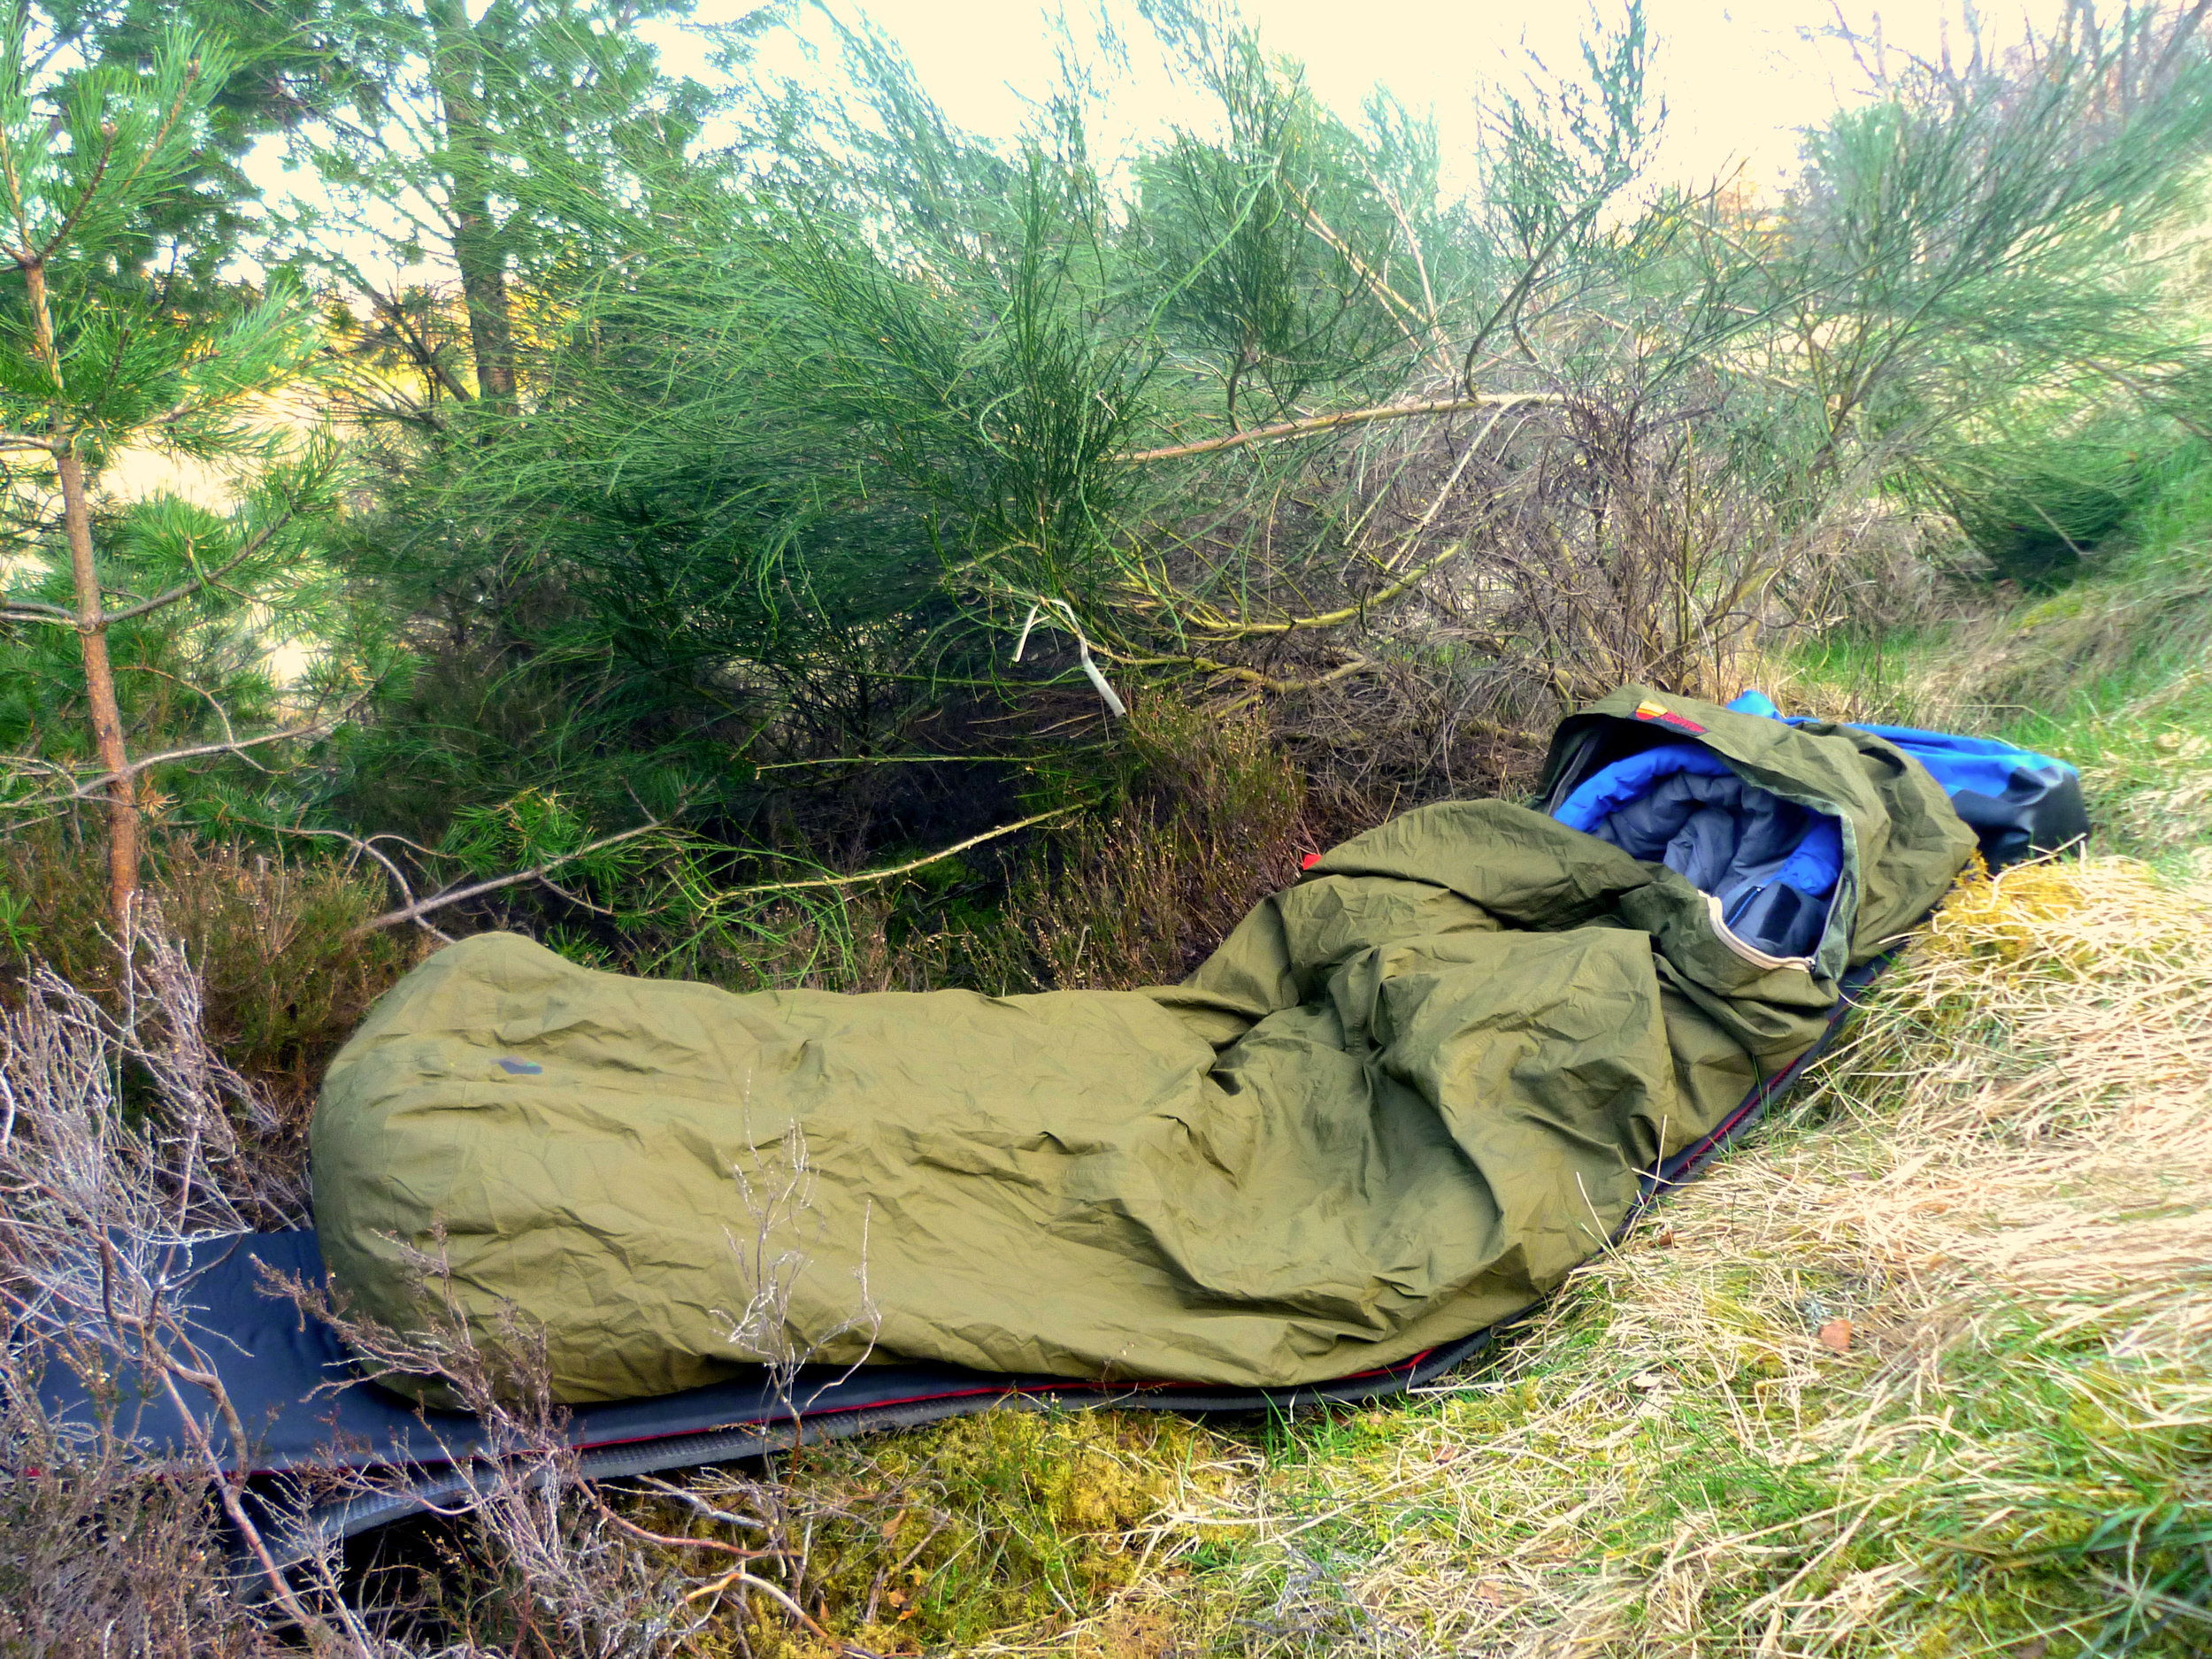 You don't need much gear to get out there and have a go at Wild Camping…